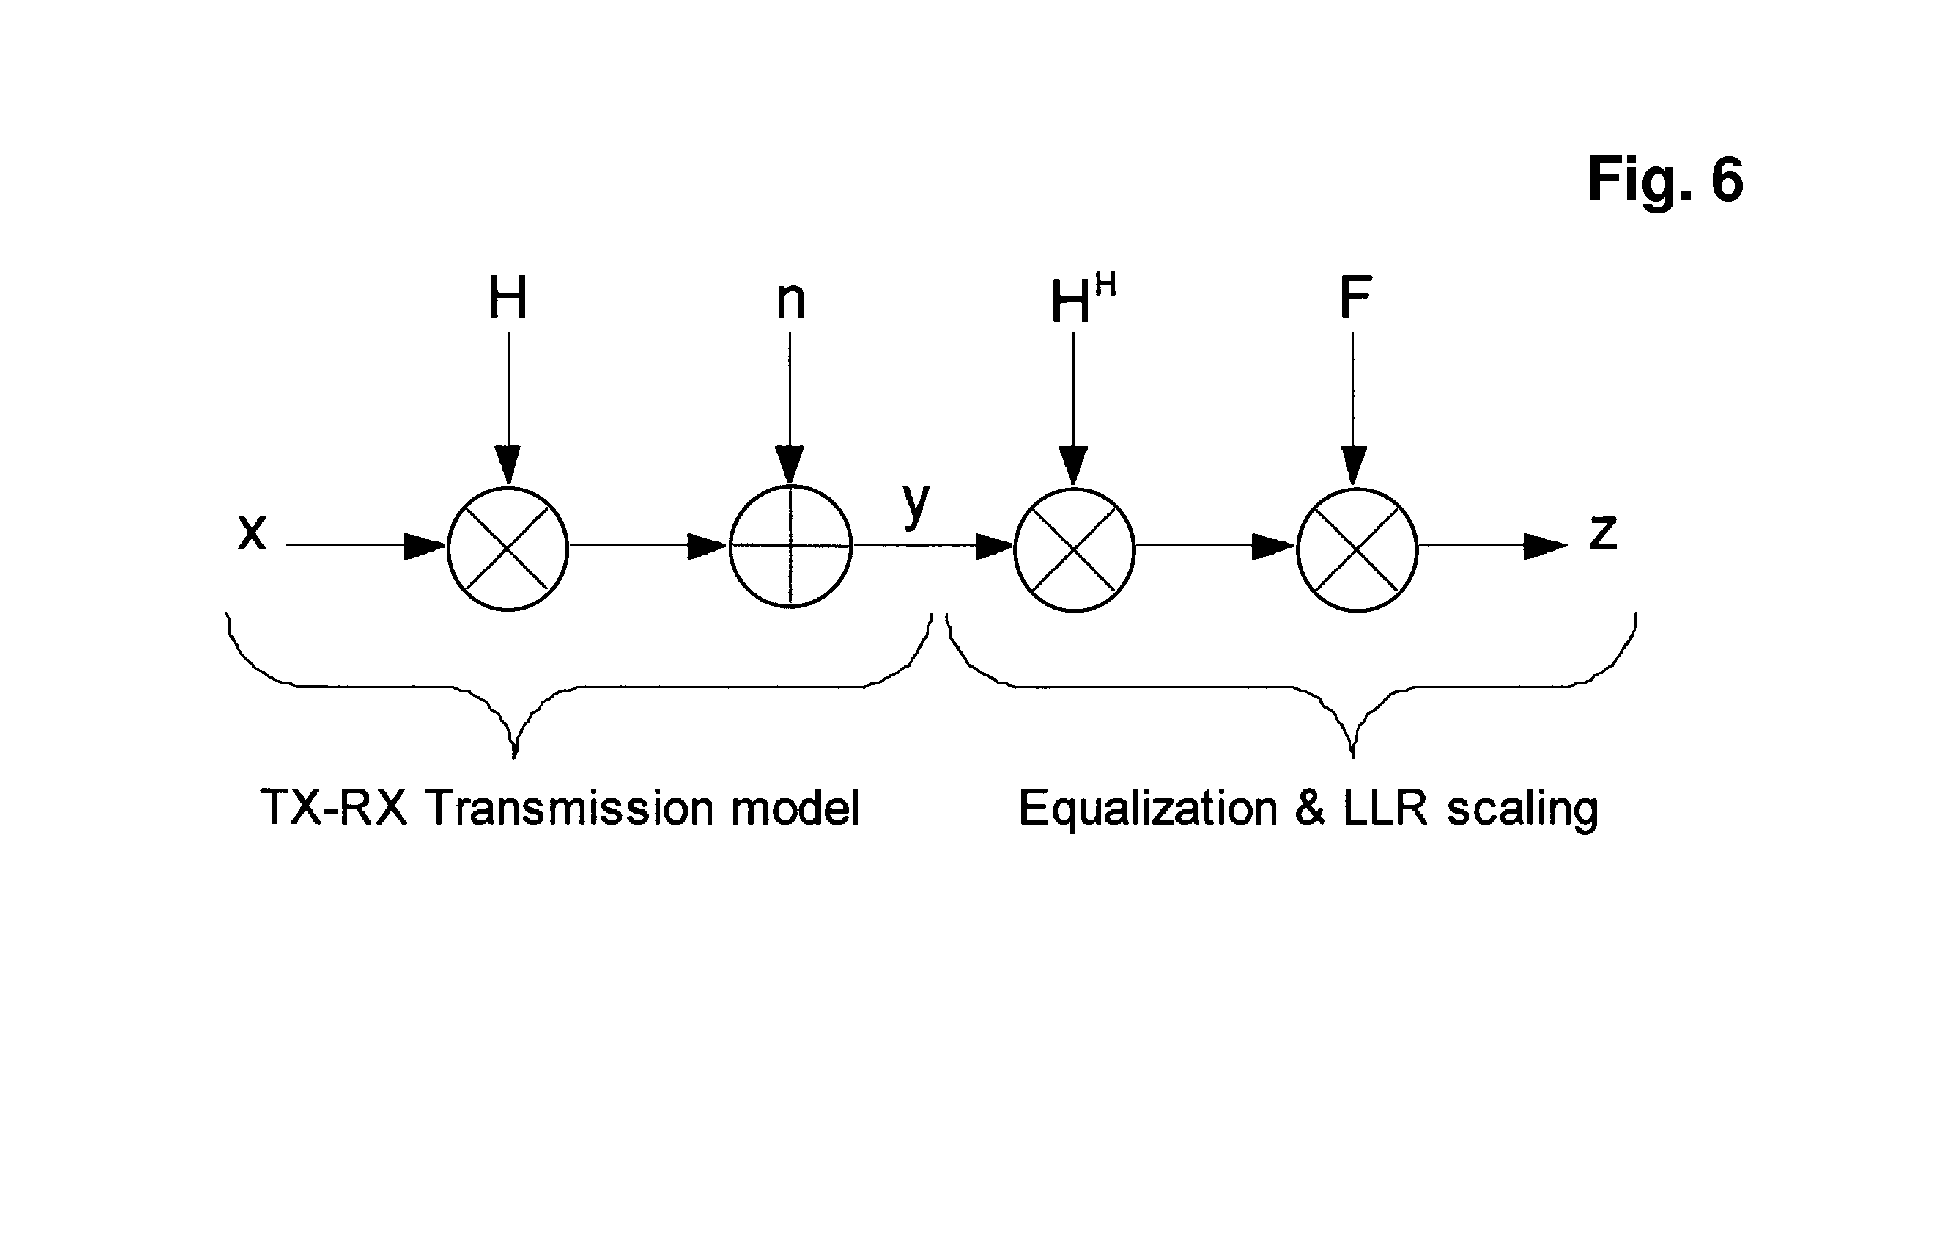 A low complexity mmse for ofdm